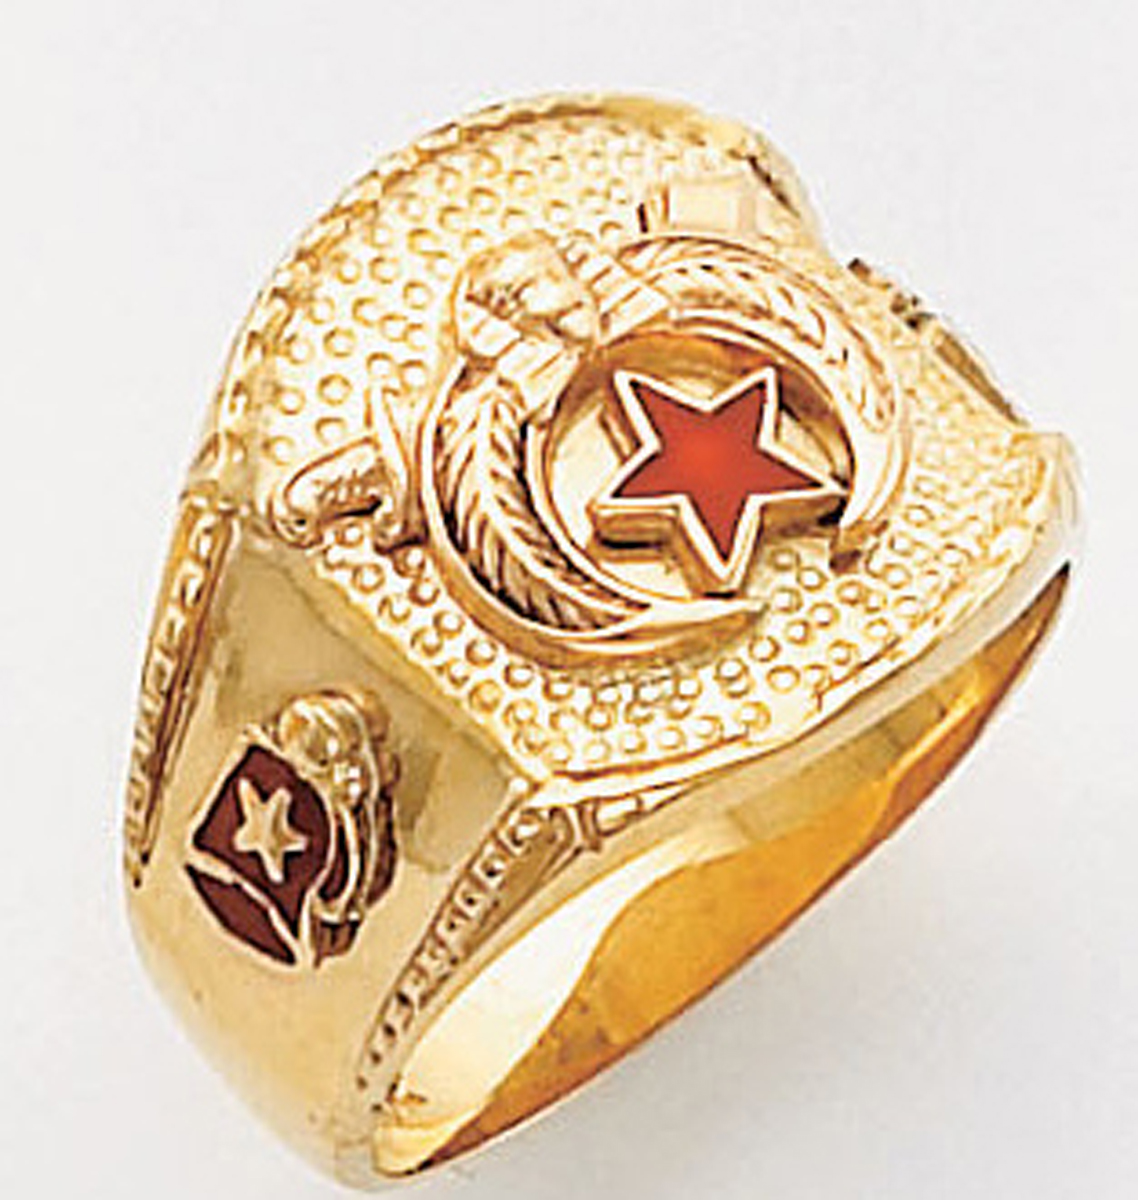 Masonic Shrine Ring Macoy Publishing Masonic Supply 5191SBL